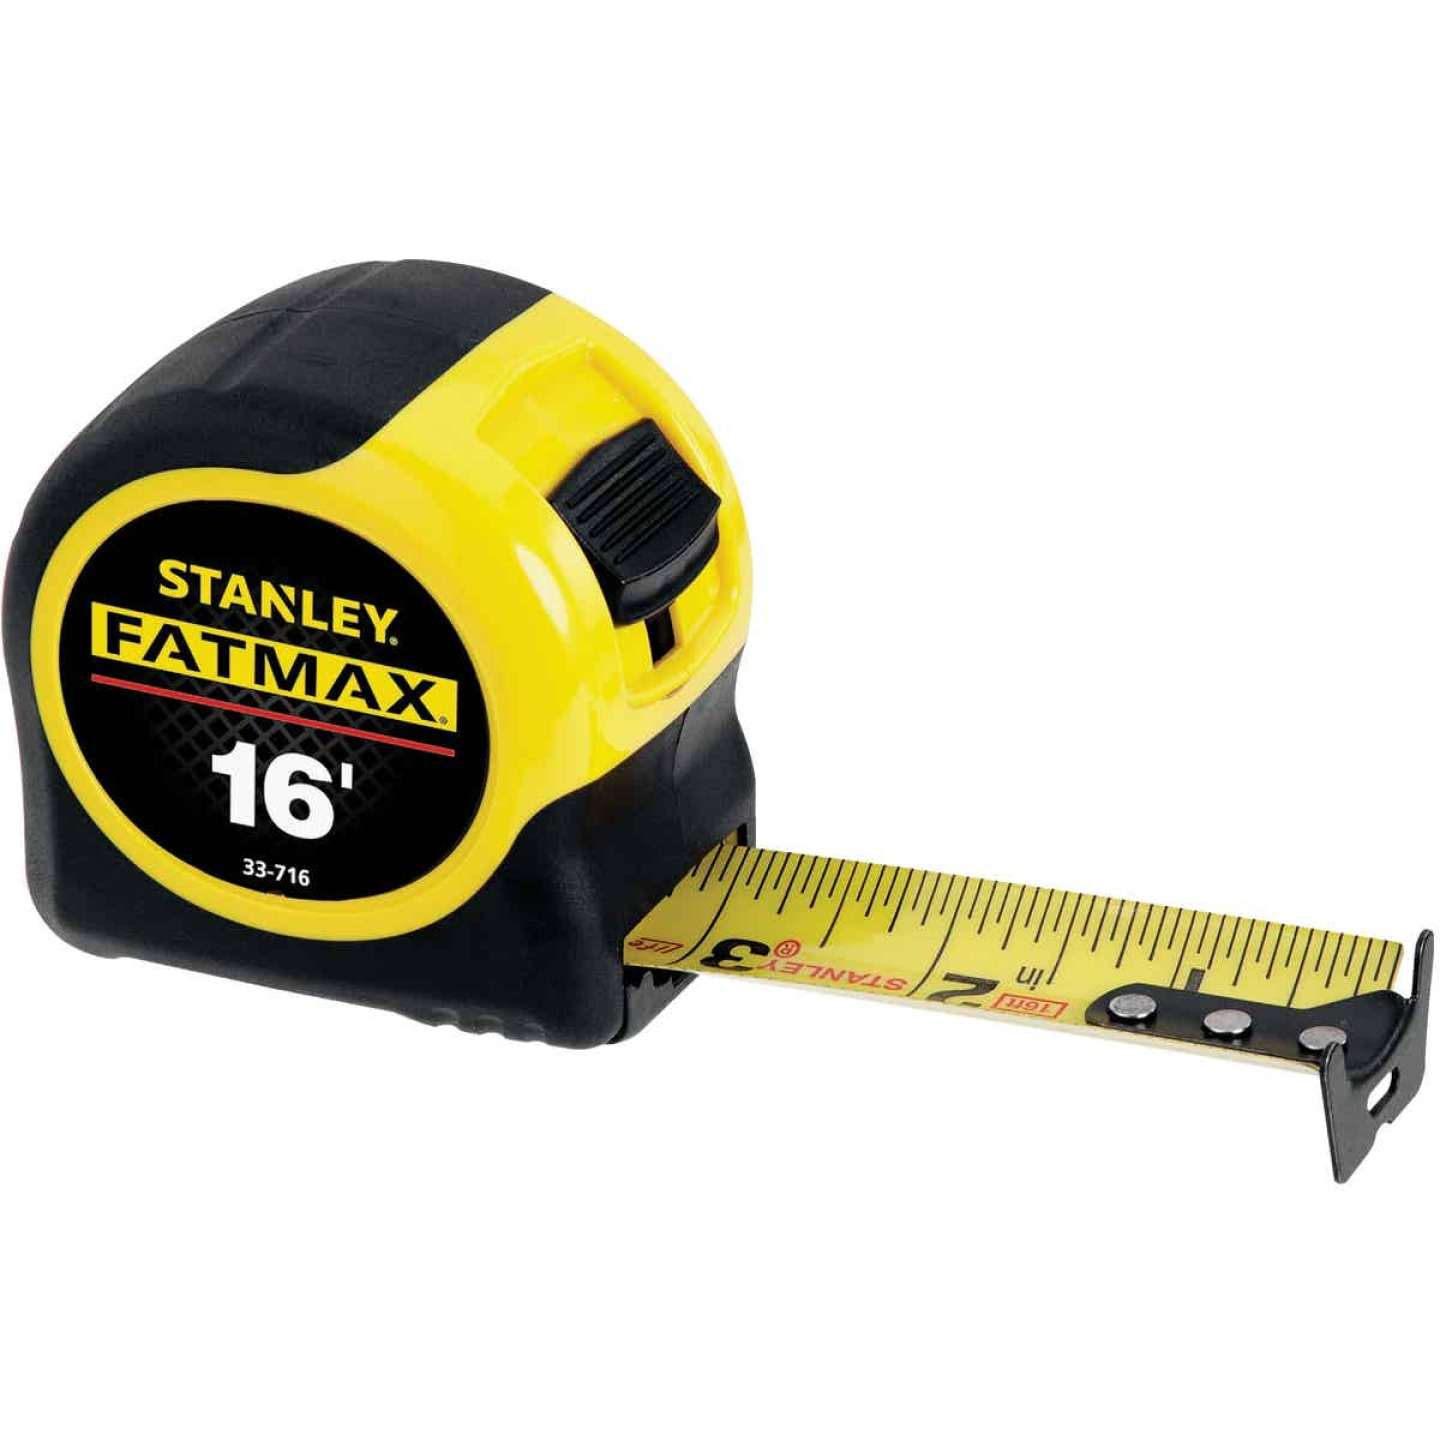 Stanley FatMax 16 Ft. Classic Tape Measure with 11 Ft. Standout Image 1